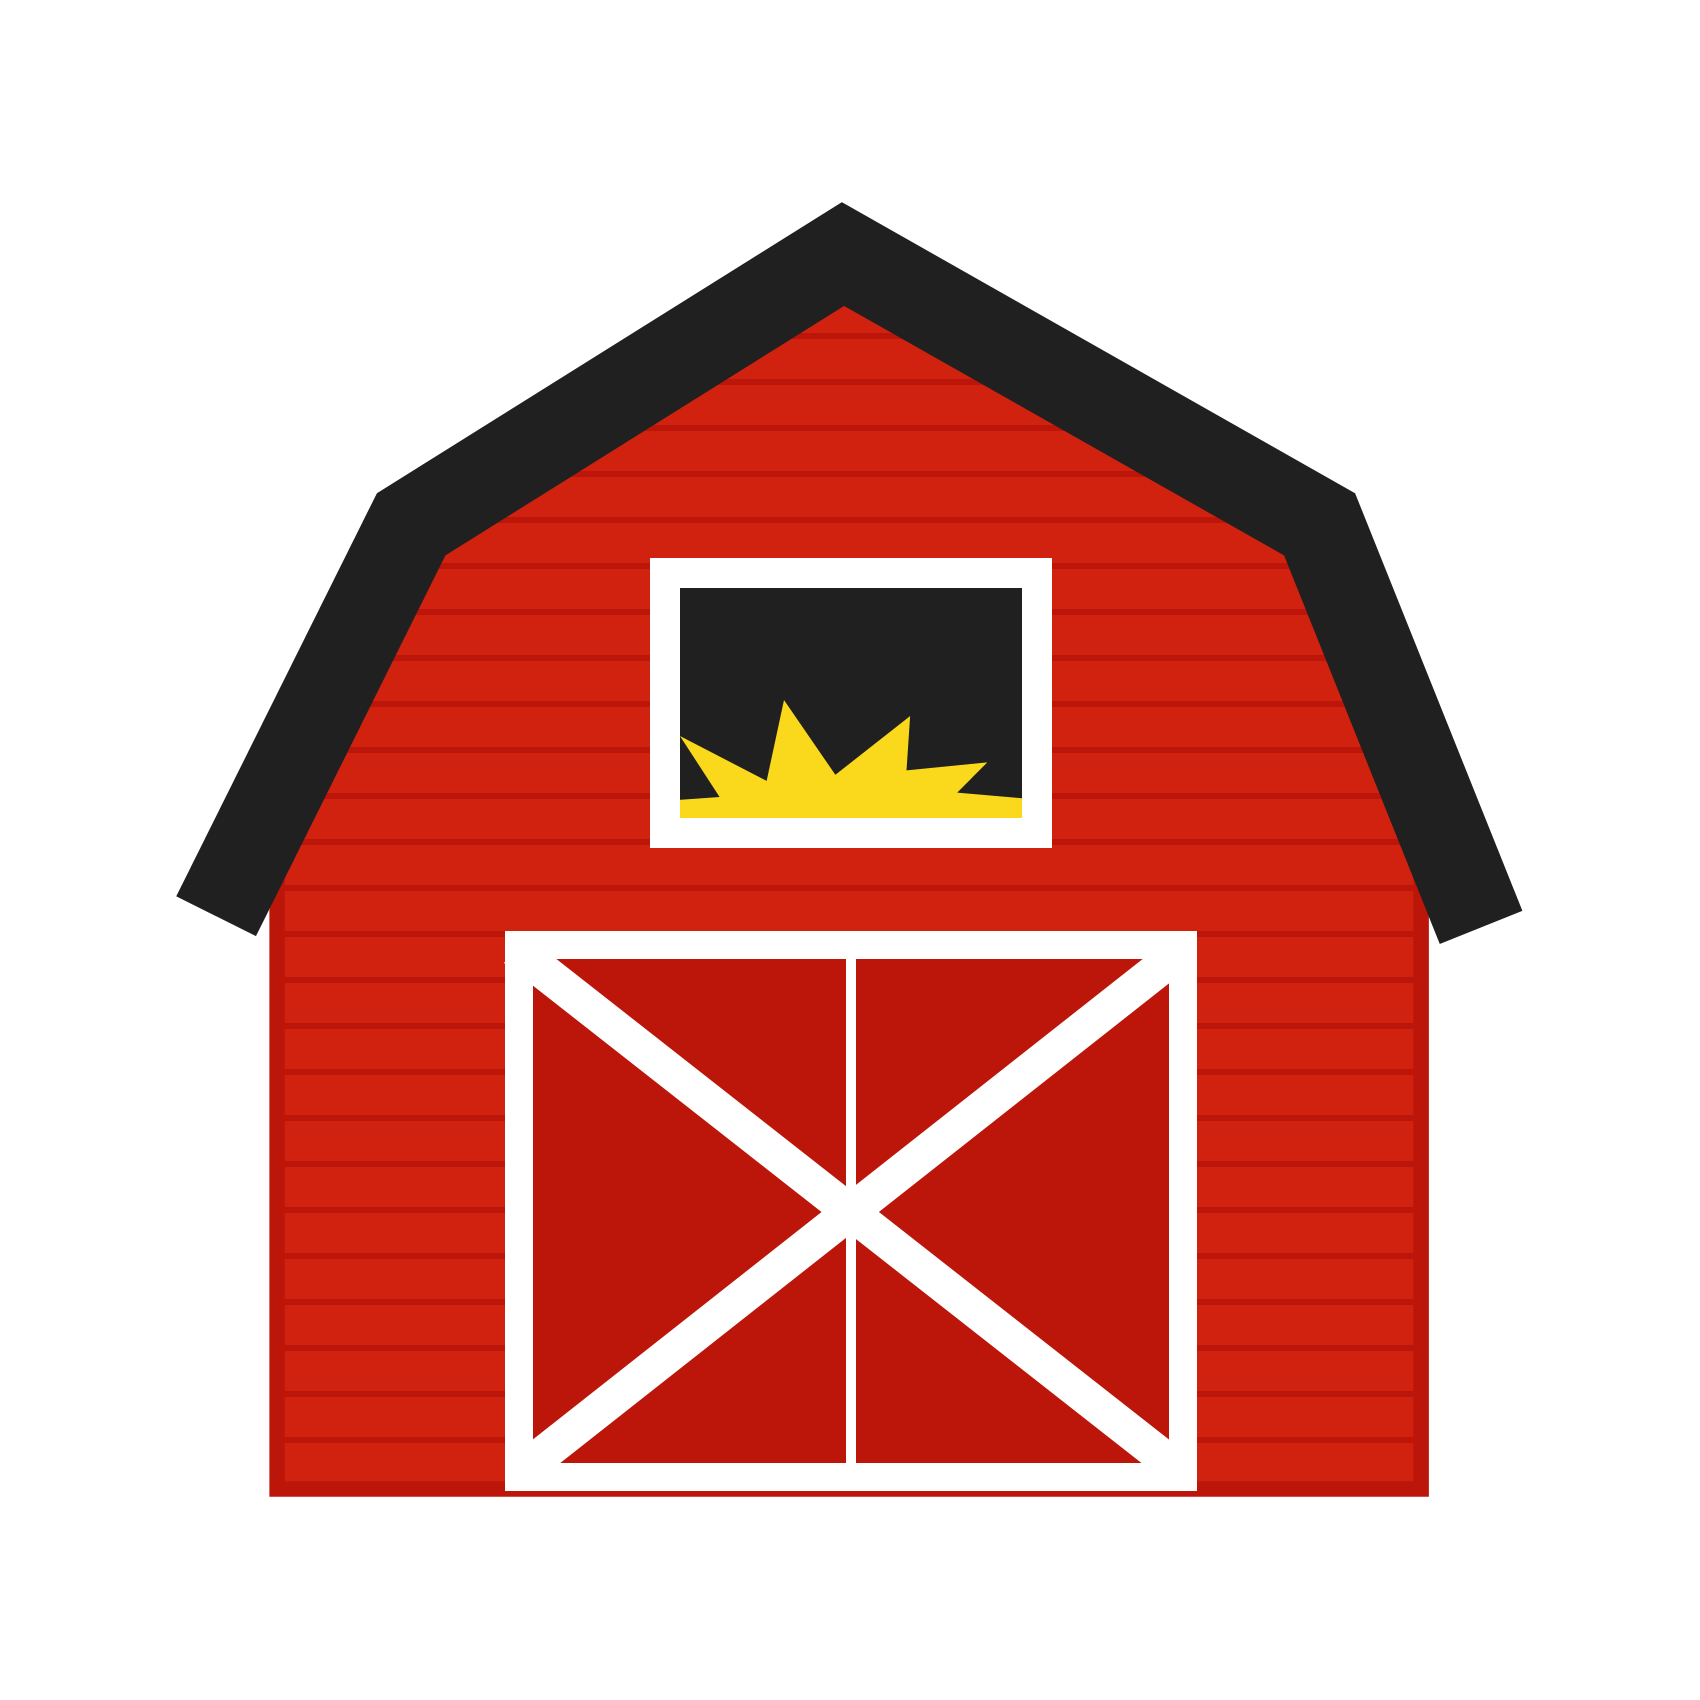 Barn clipart farmhouse. Farm house clip art